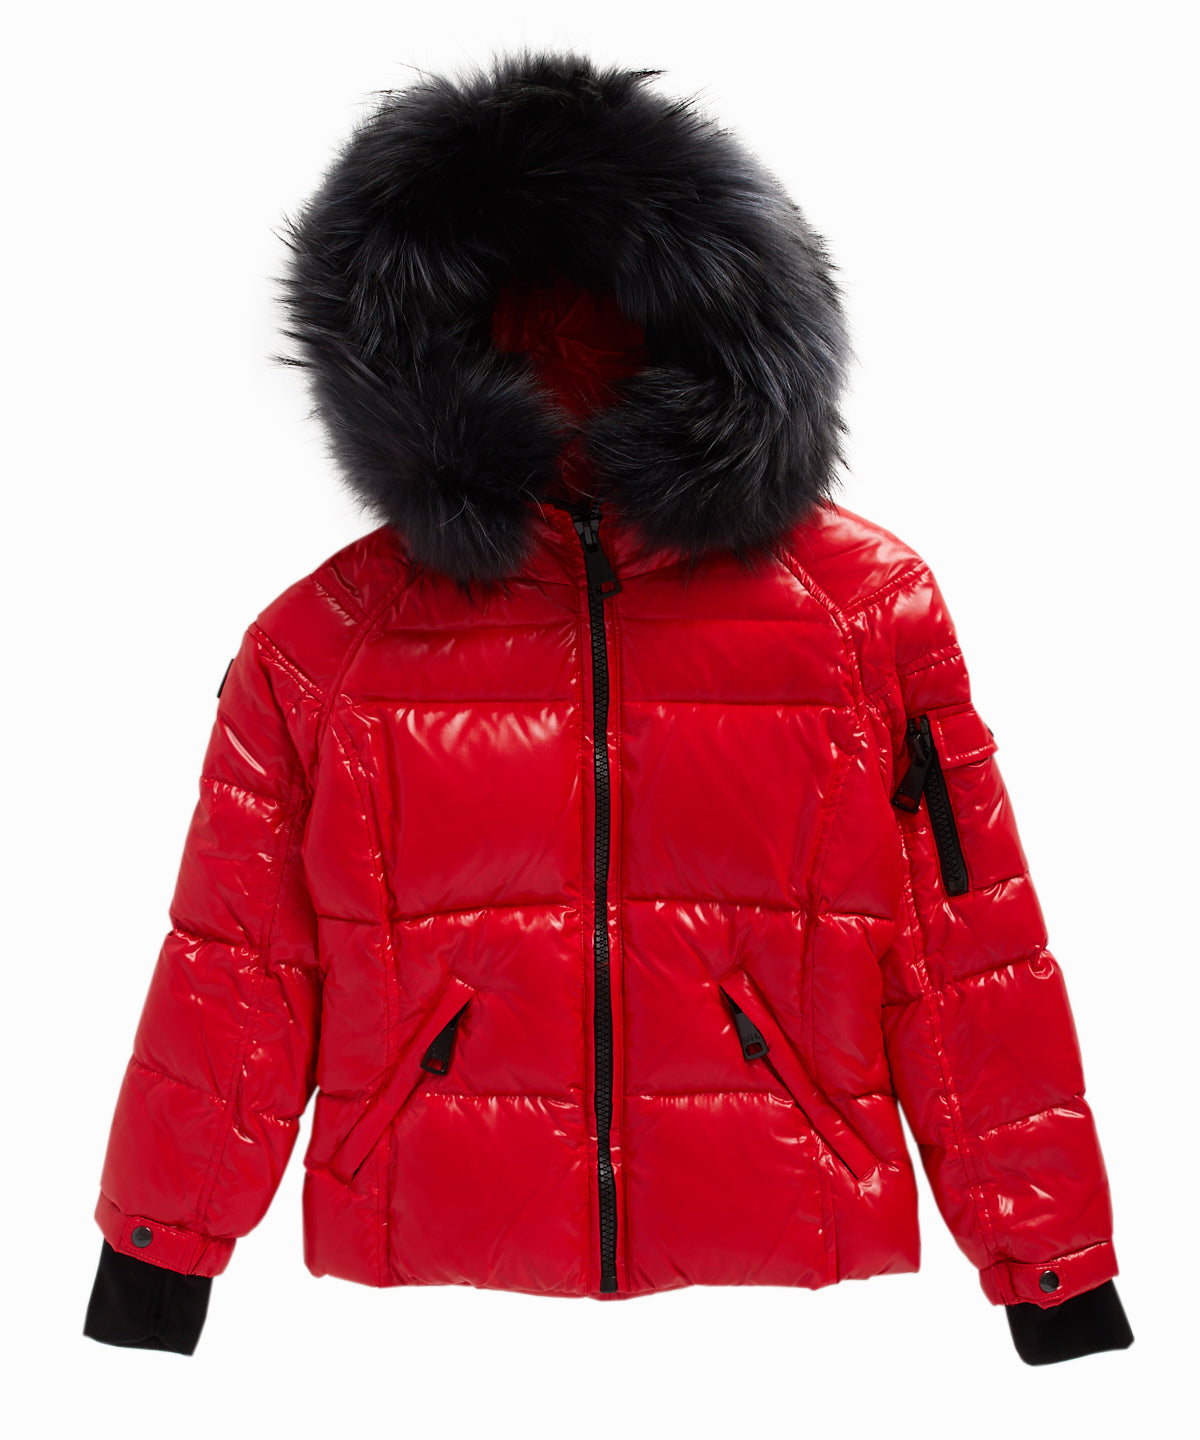 Exclusive Blake Raccoon Fur Trim Puffer Jacket